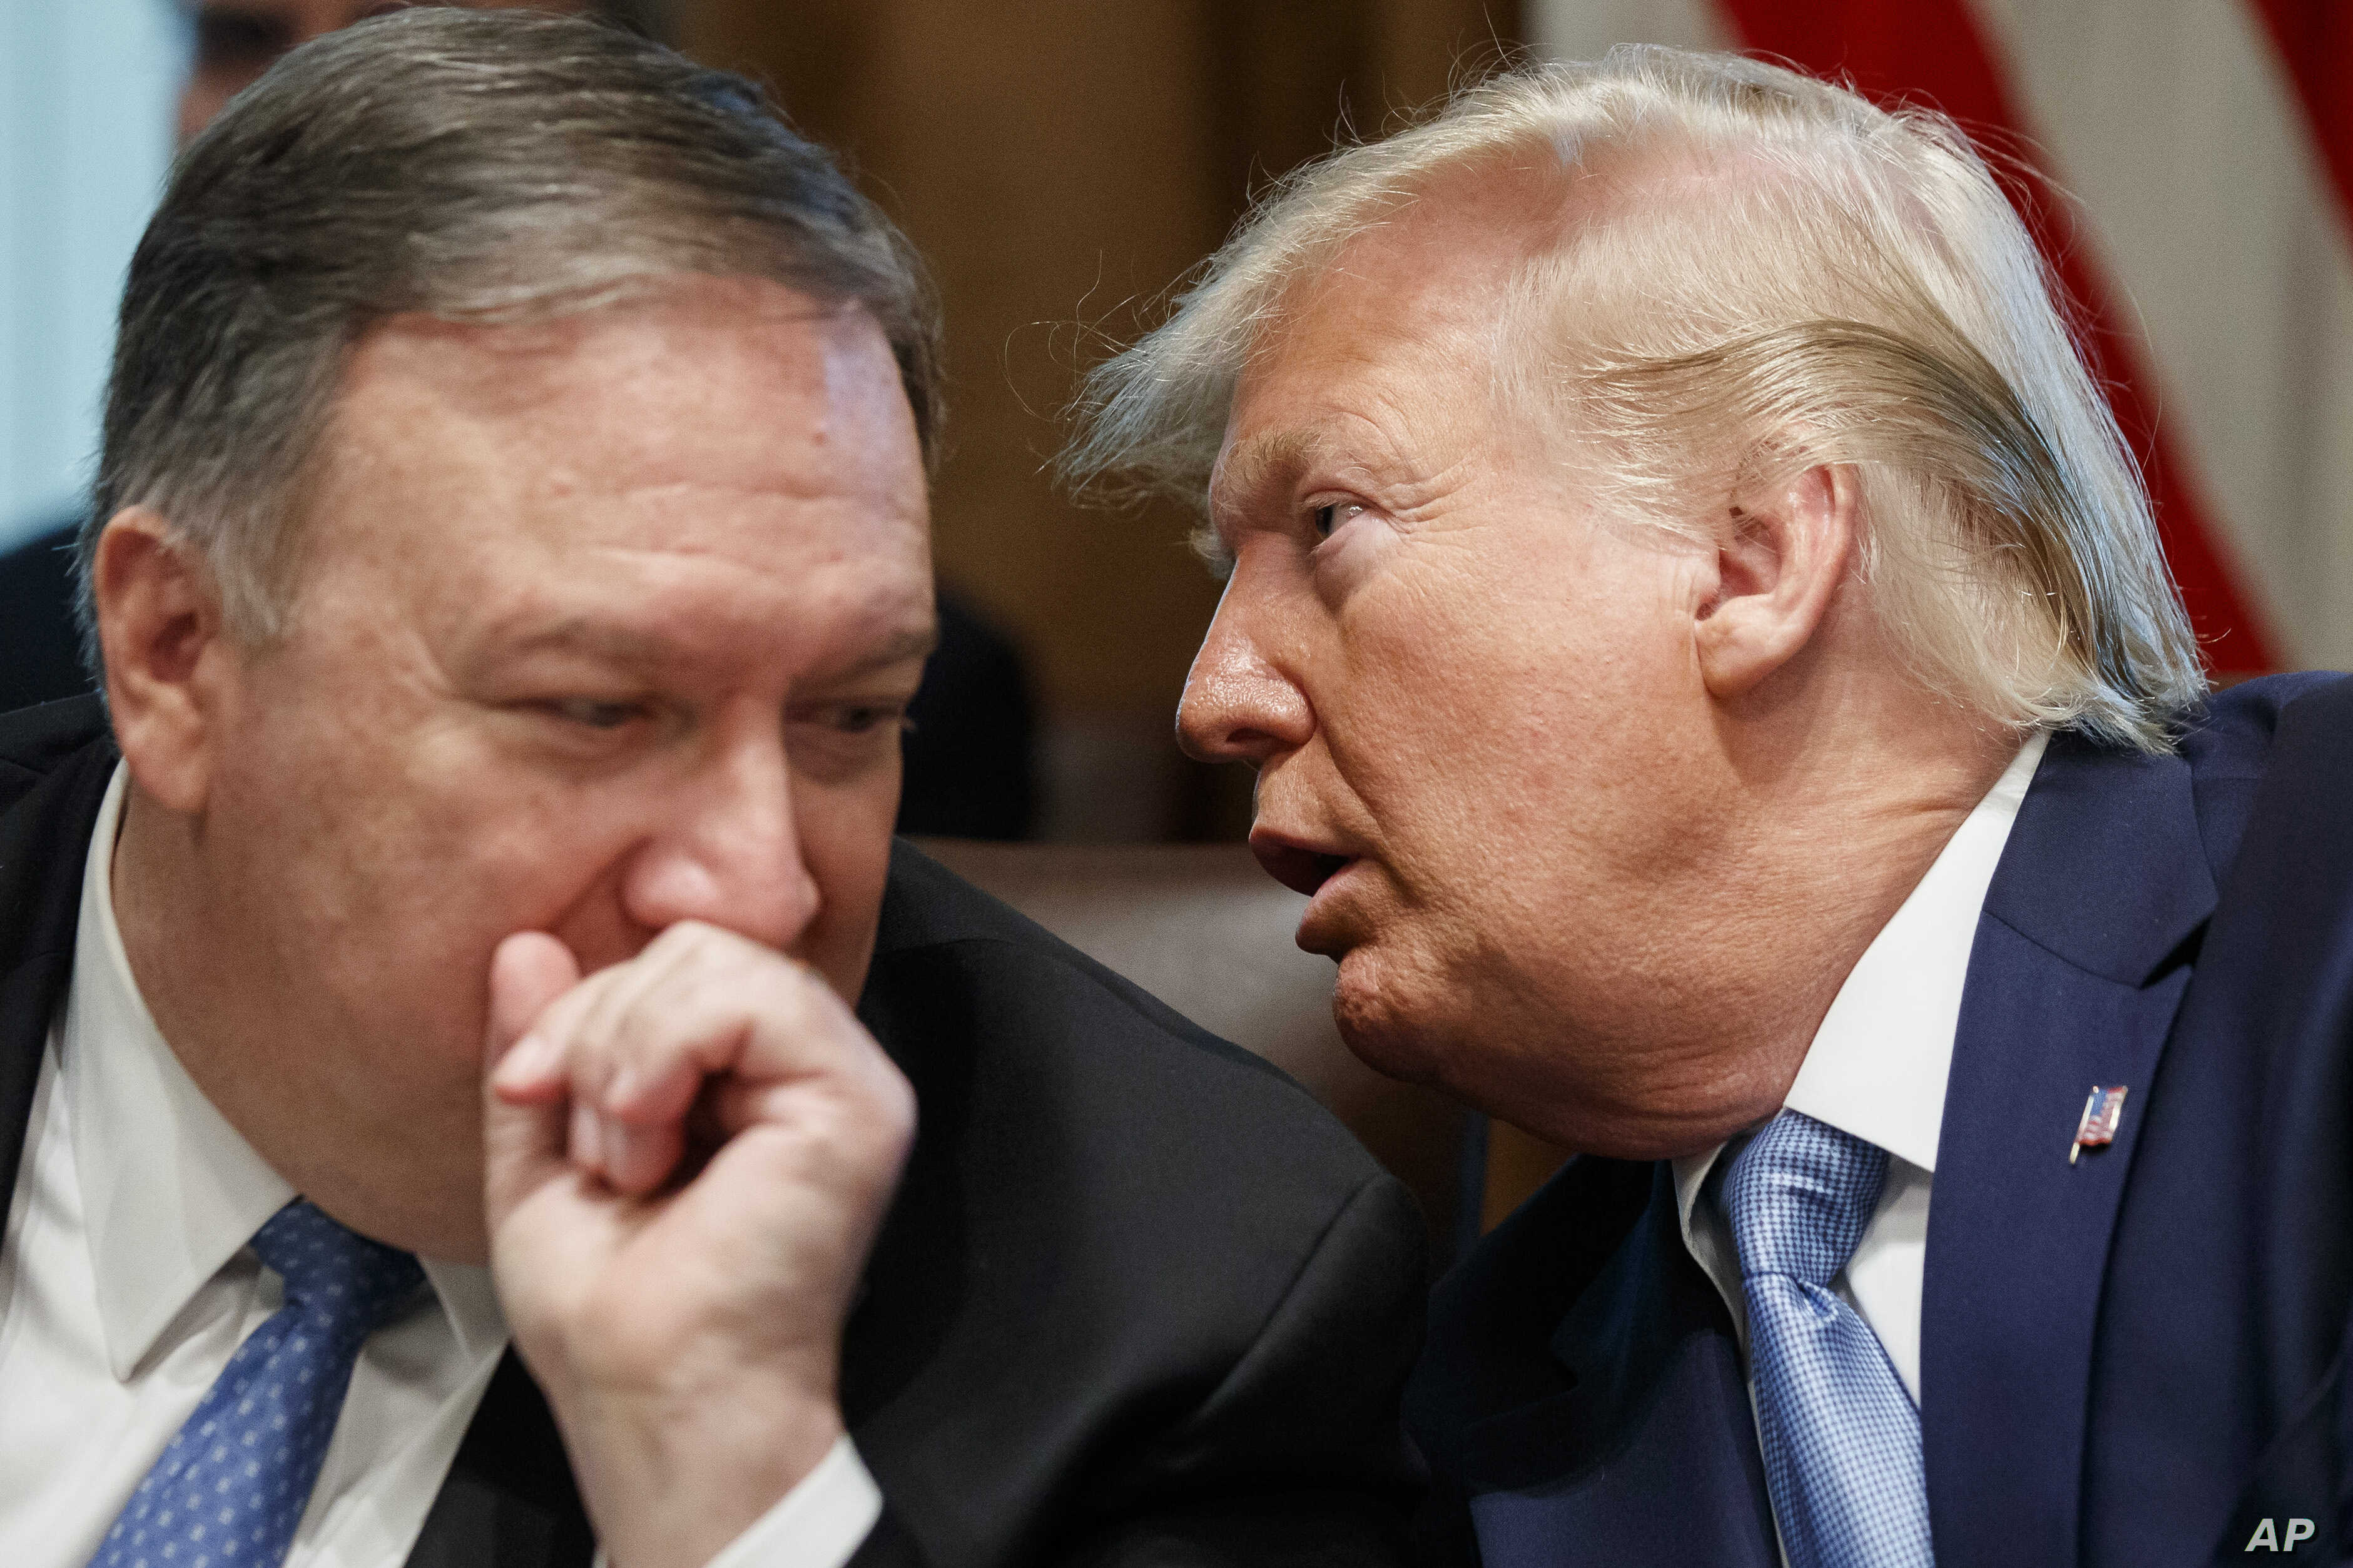 Secretary of State Mike Pompeo, left, and President Donald Trump whisper during a Cabinet meeting in the Cabinet Room of the White House, Tuesday, July 16, 2019, in Washington. (AP Photo/Alex Brandon)